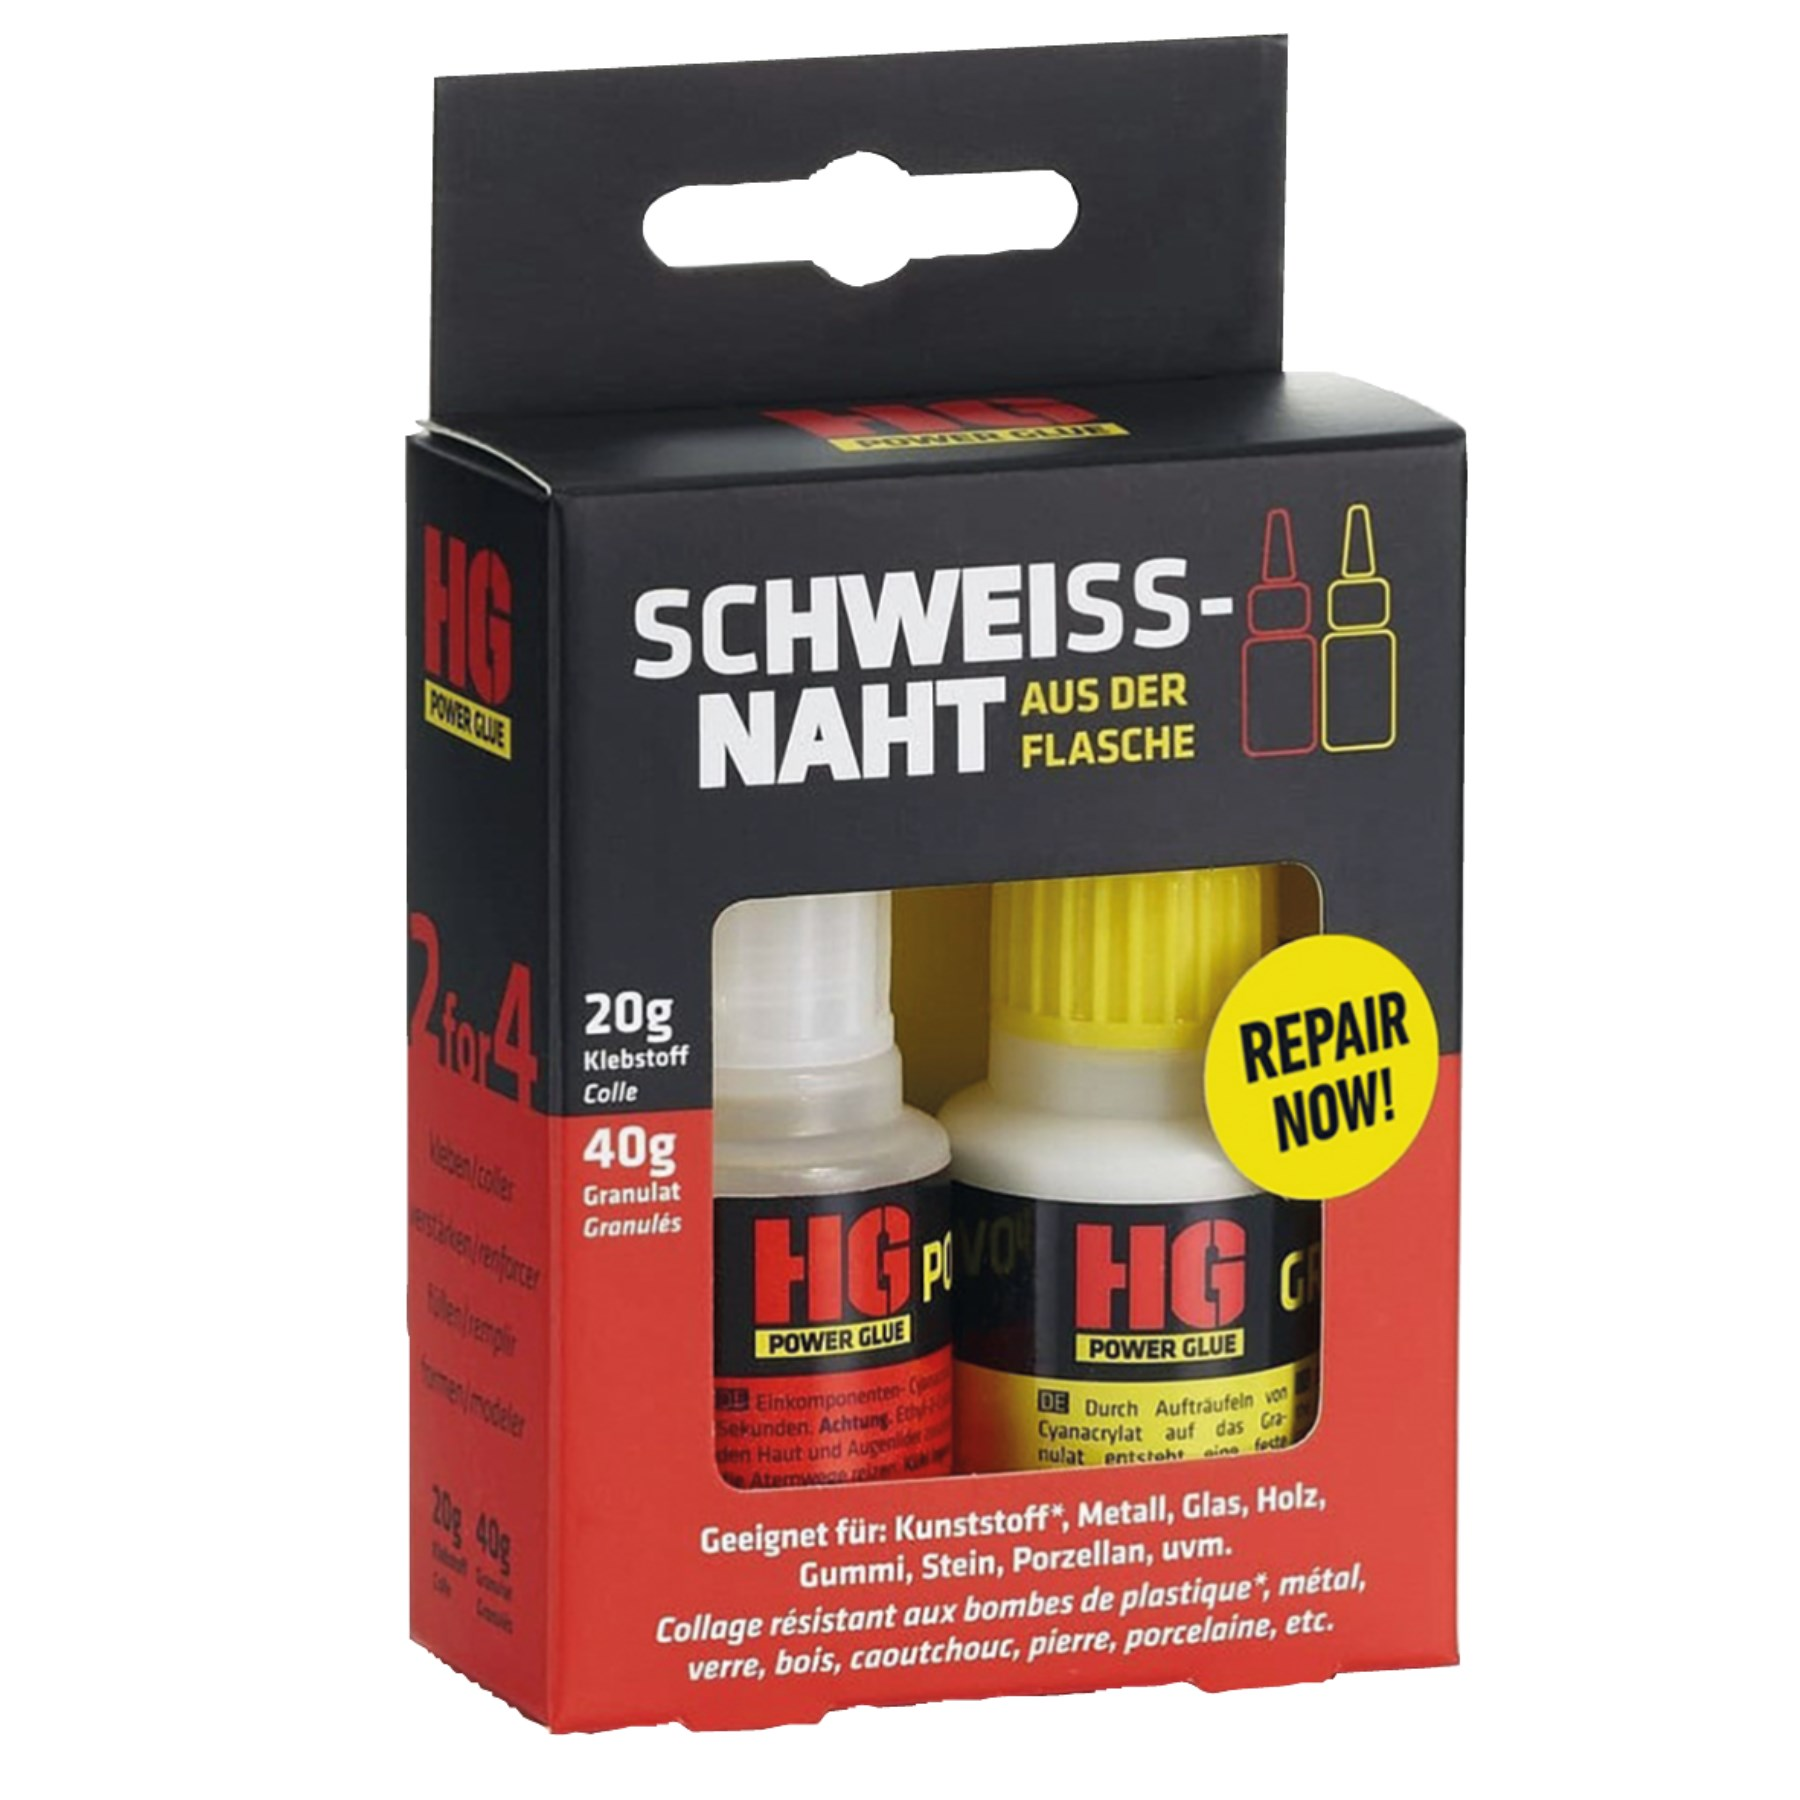 1257535 - HG Powerglue groß 20/40g